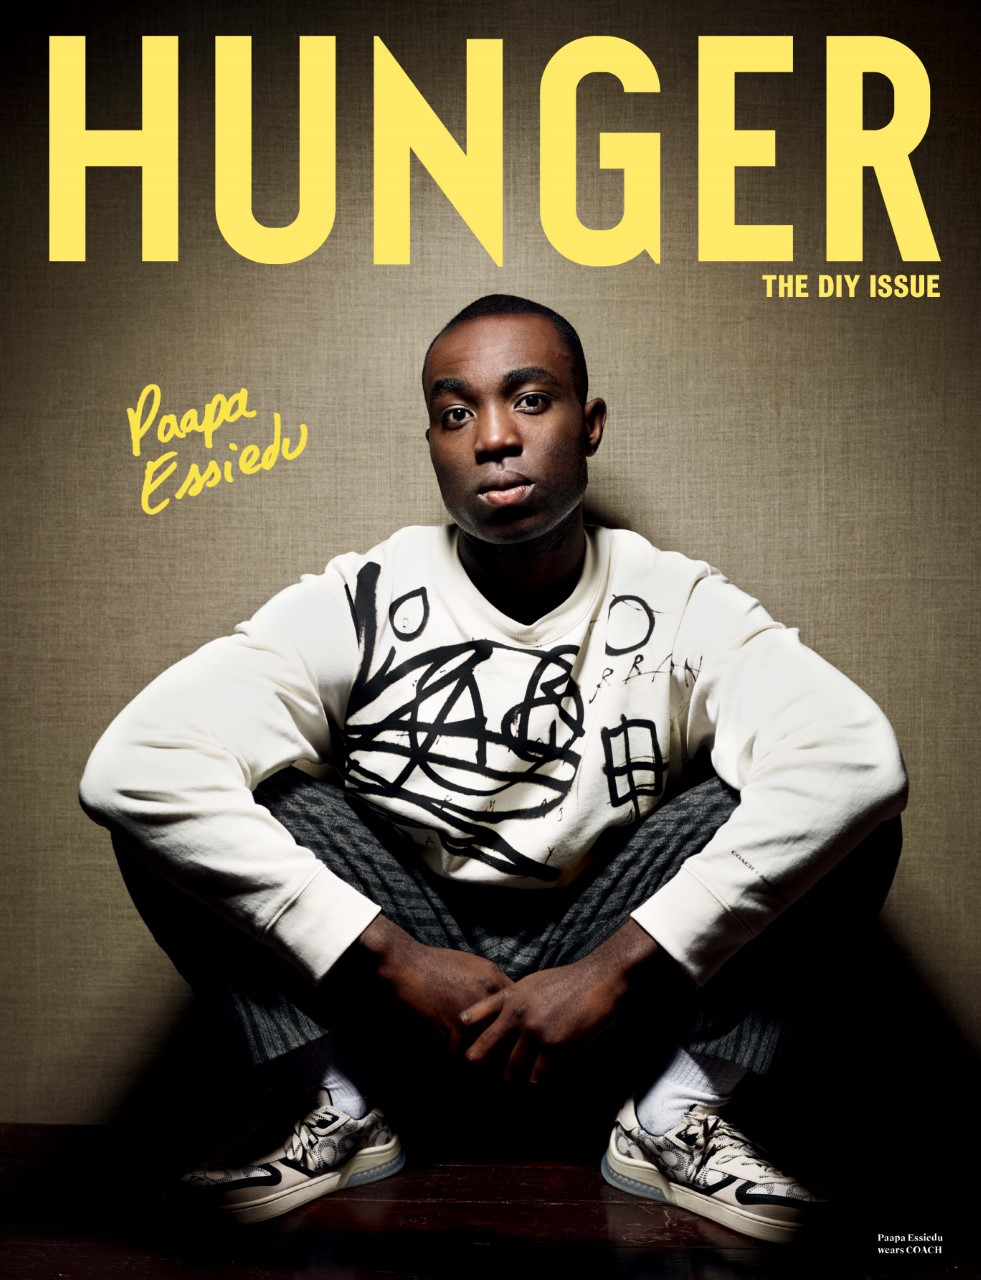 Actor Paapa Essiedu on the cover of Hunger magazine, The DIY issue.